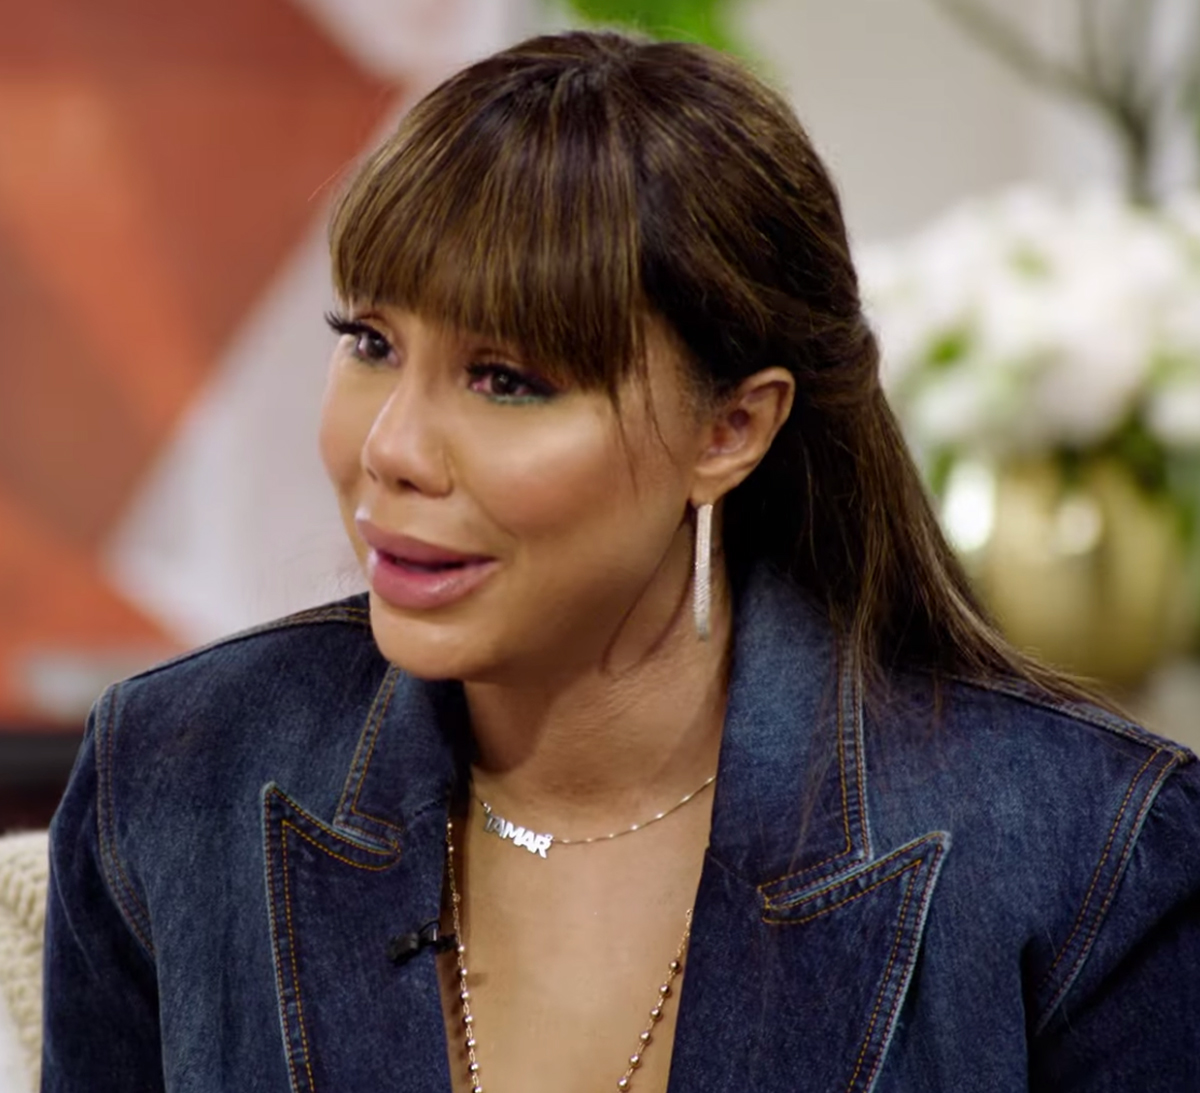 Tamar Braxton Opens Up About 'Toxic Lifestyle' & Suicide Attempt In Raw Interview: 'I Just Didn't See Another Way Out'